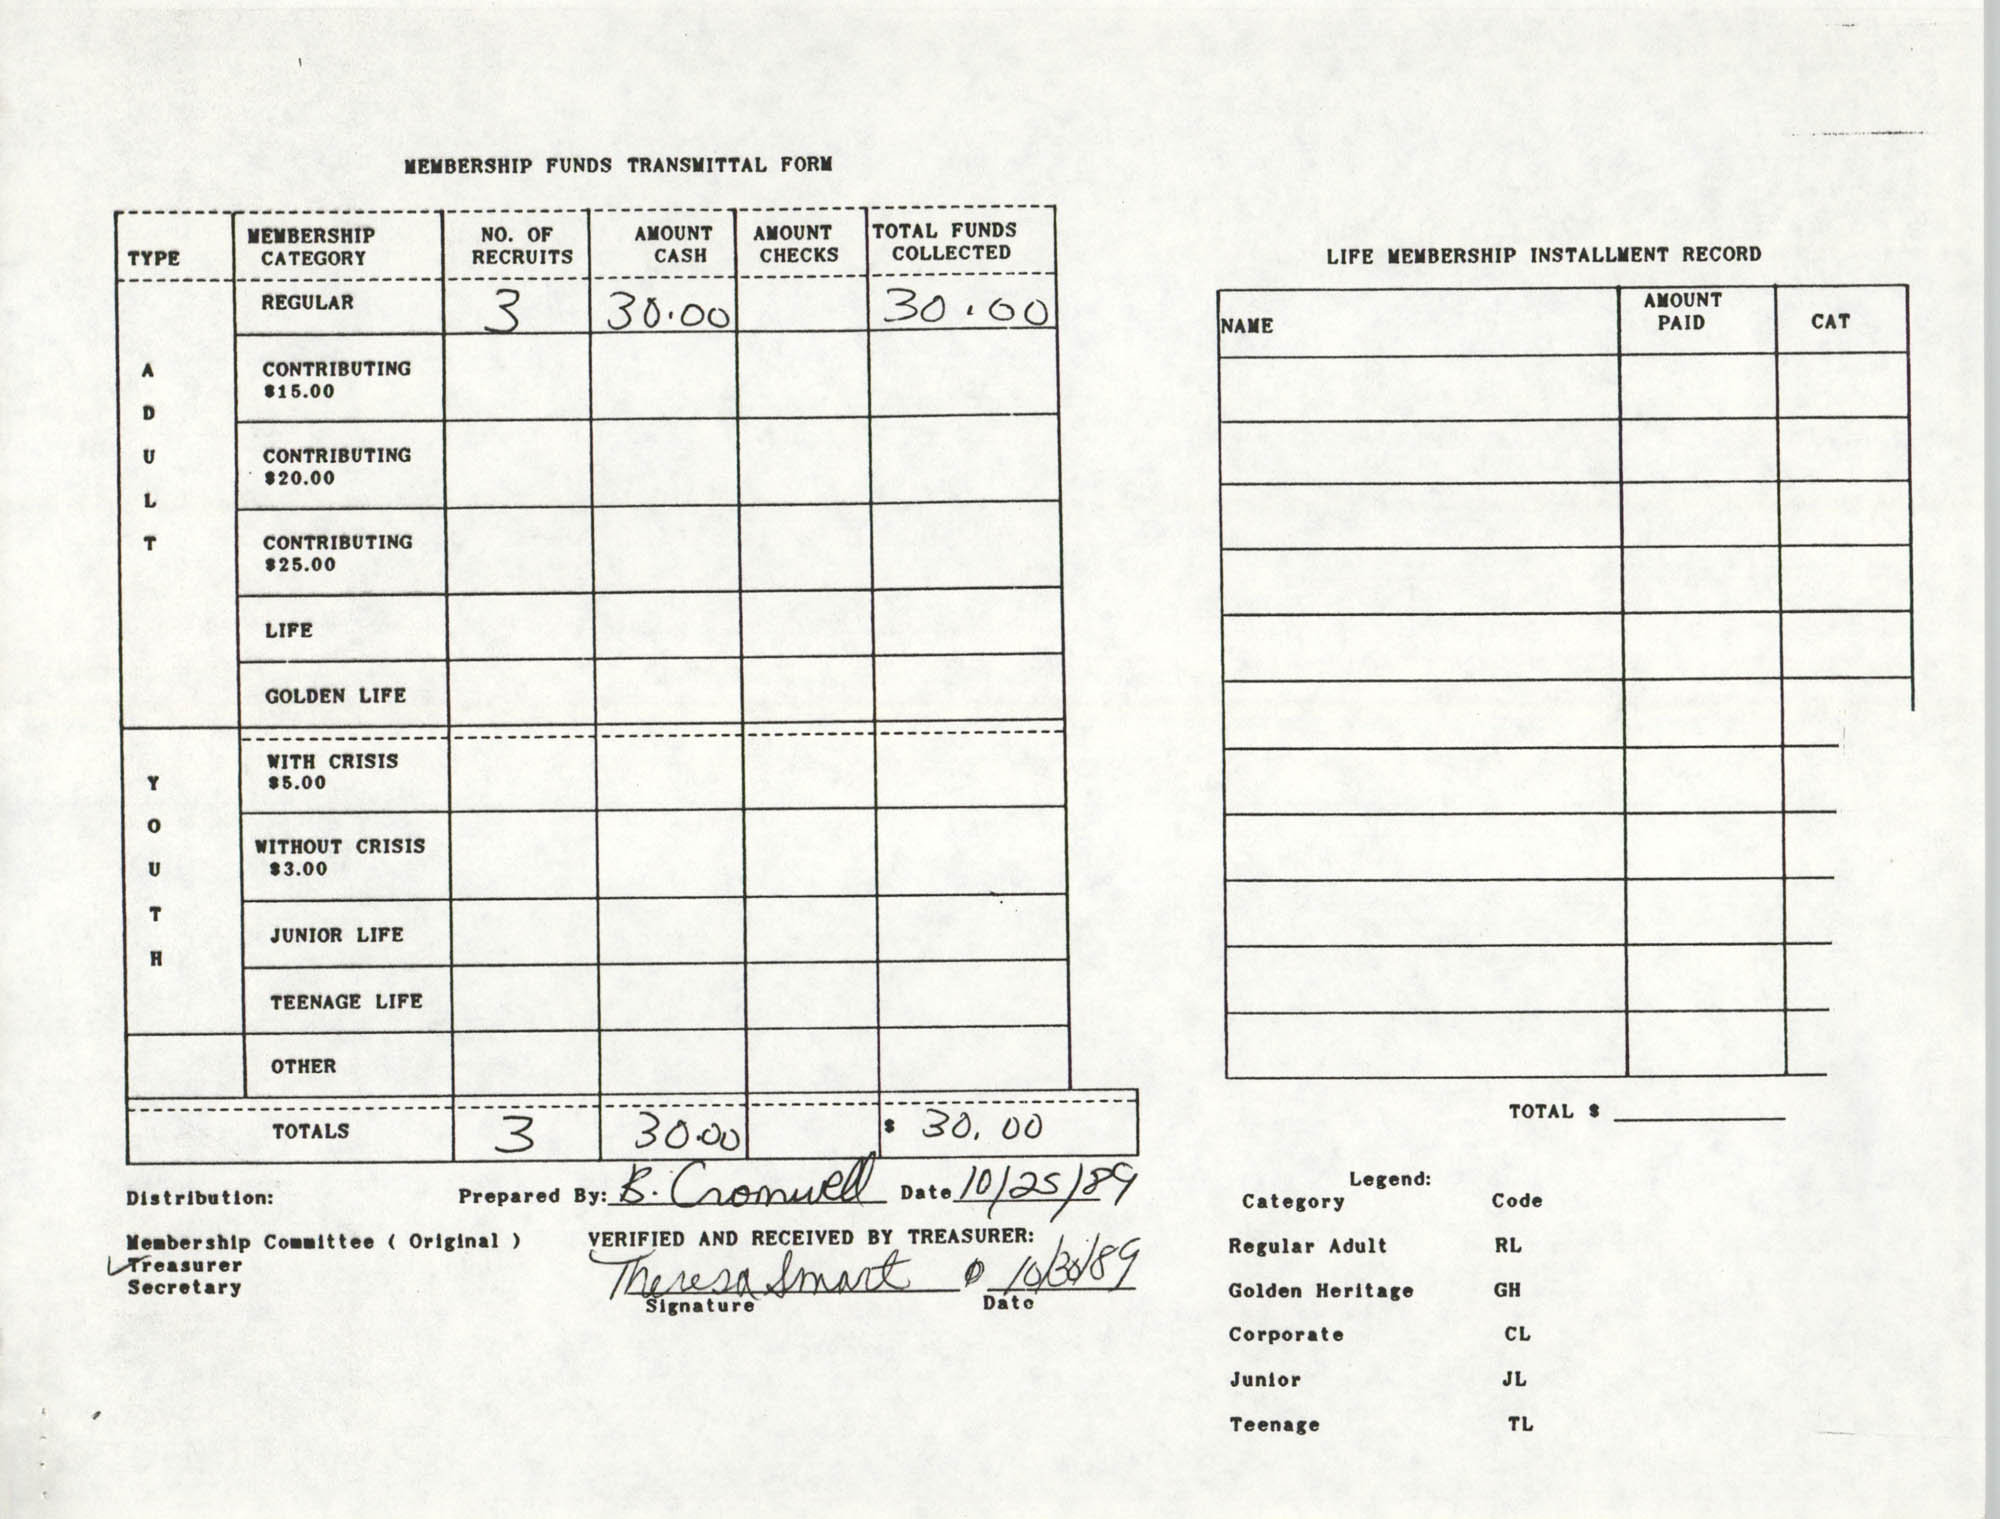 Charleston Branch of the NAACP Funds Transmittal Forms, October 1989, Page 9